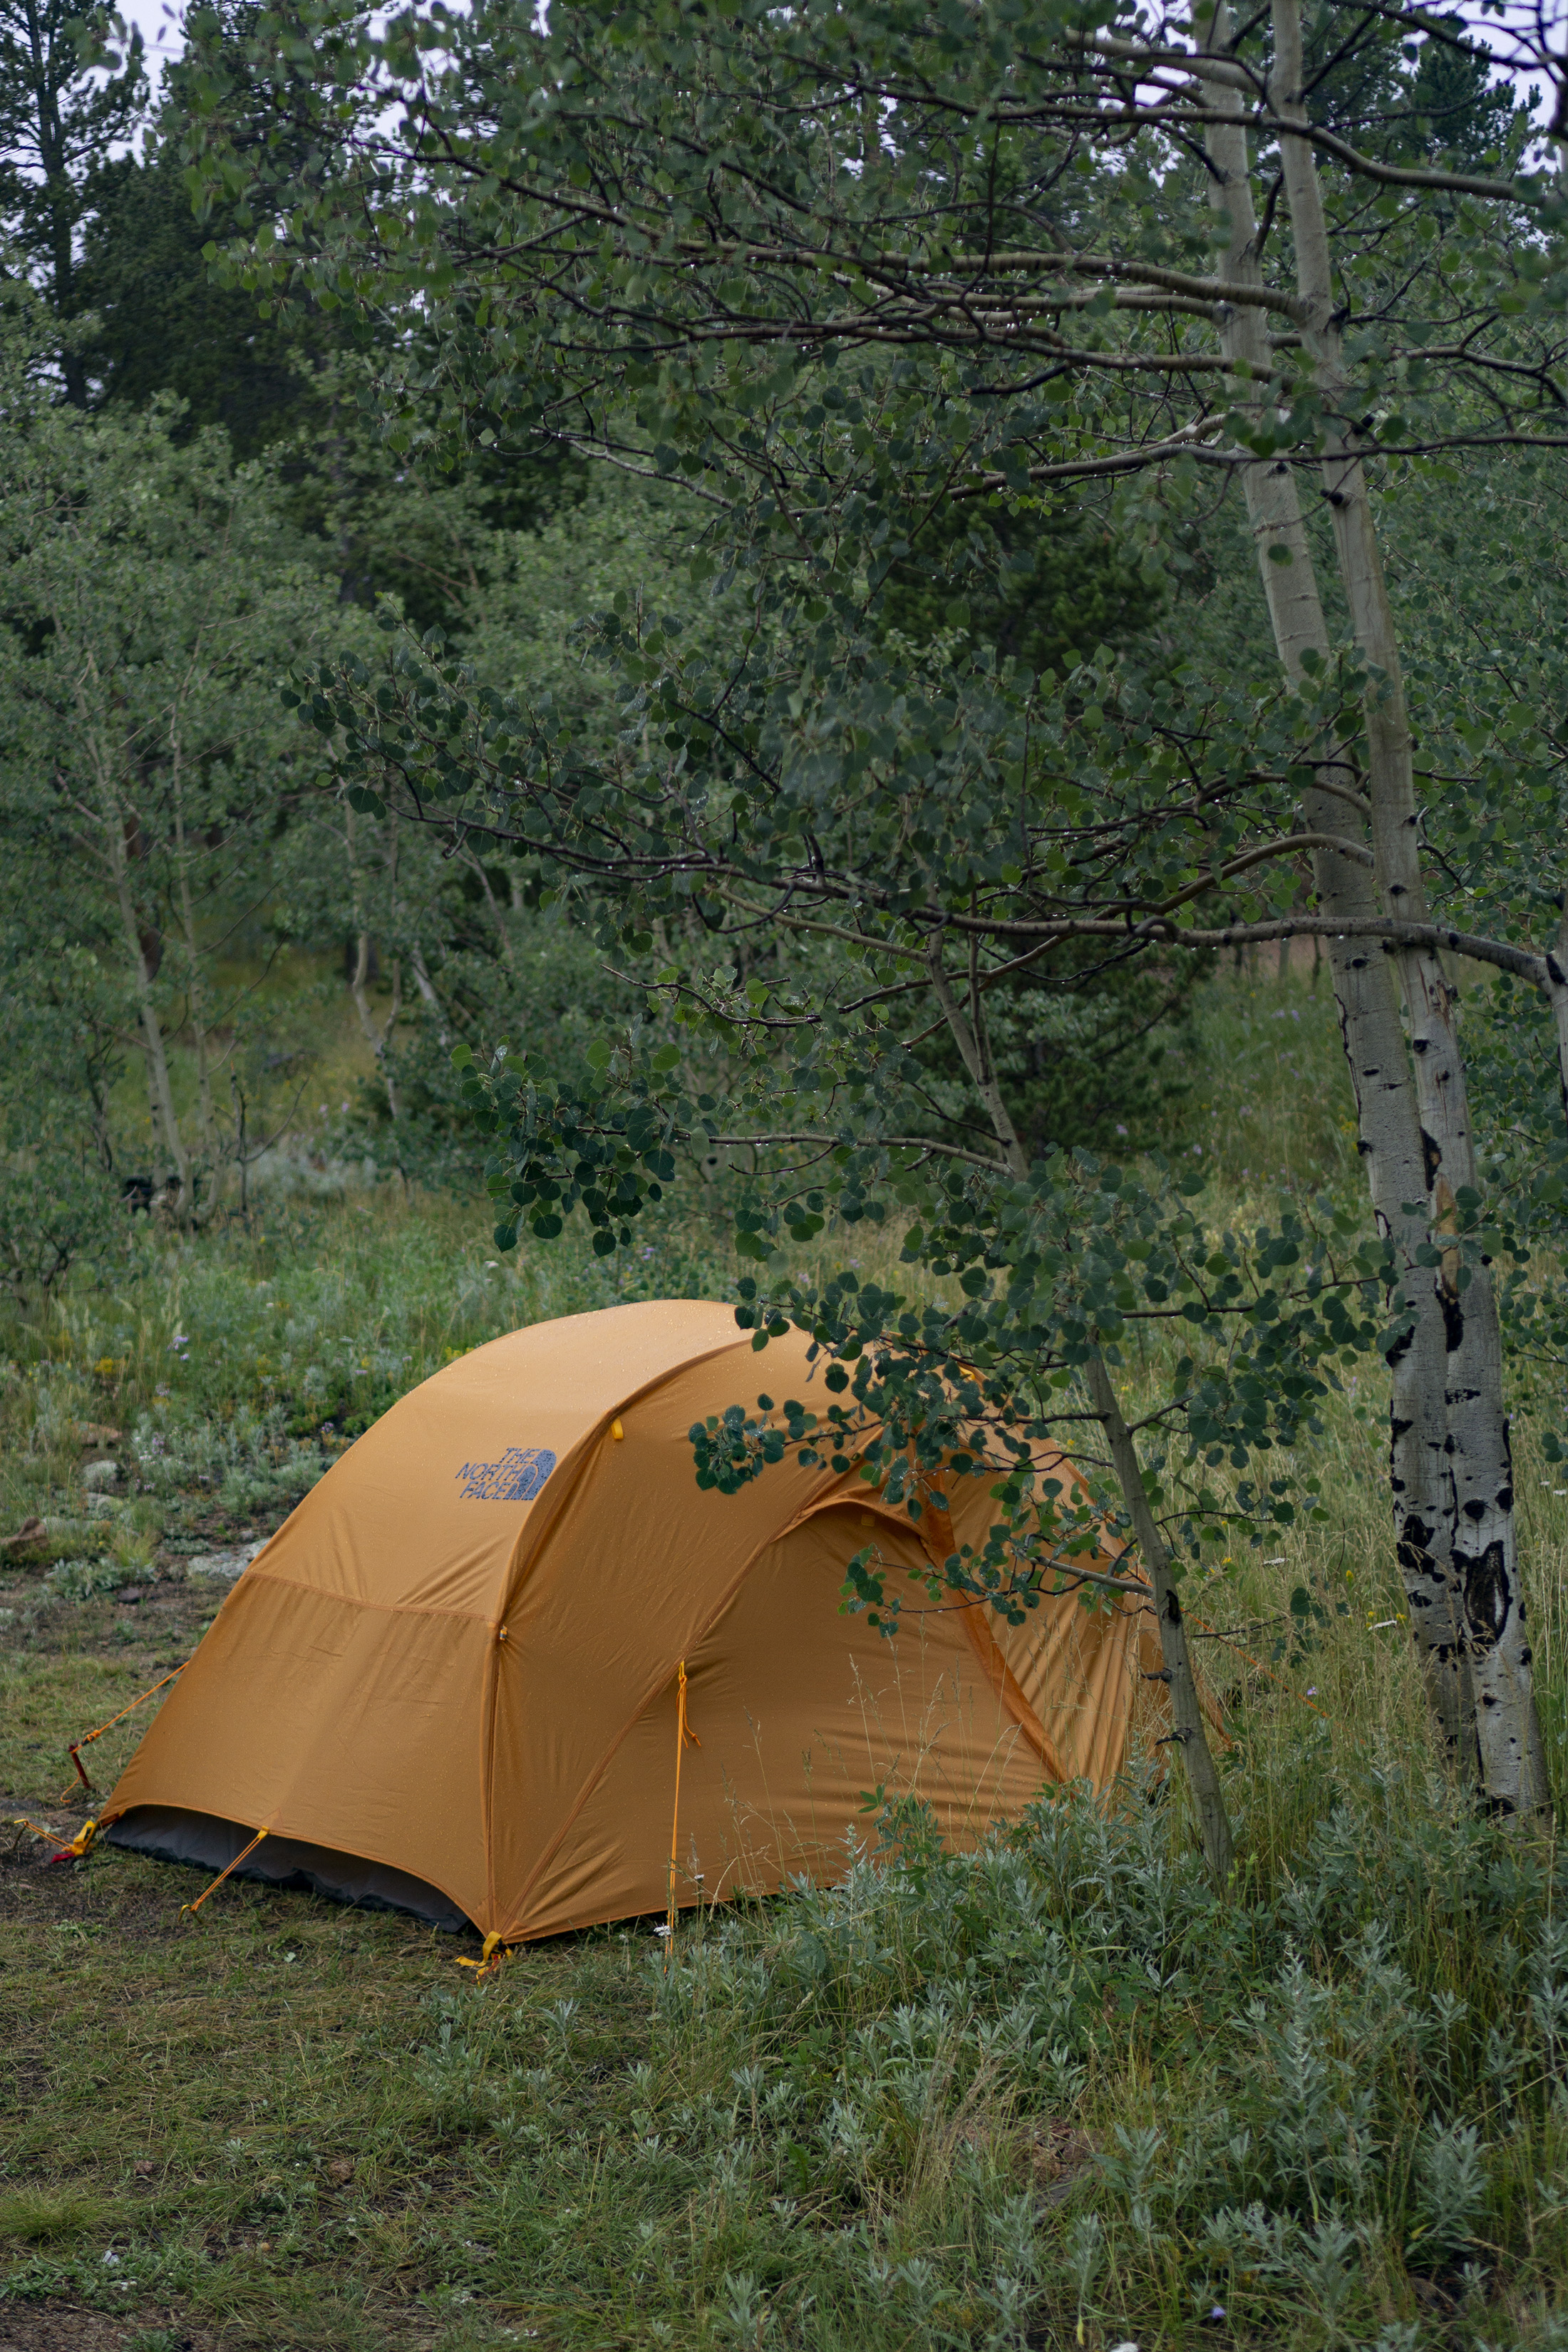 Orange North Face tent in Meeker Park Overflow Campground, Colorado / Darker than Green